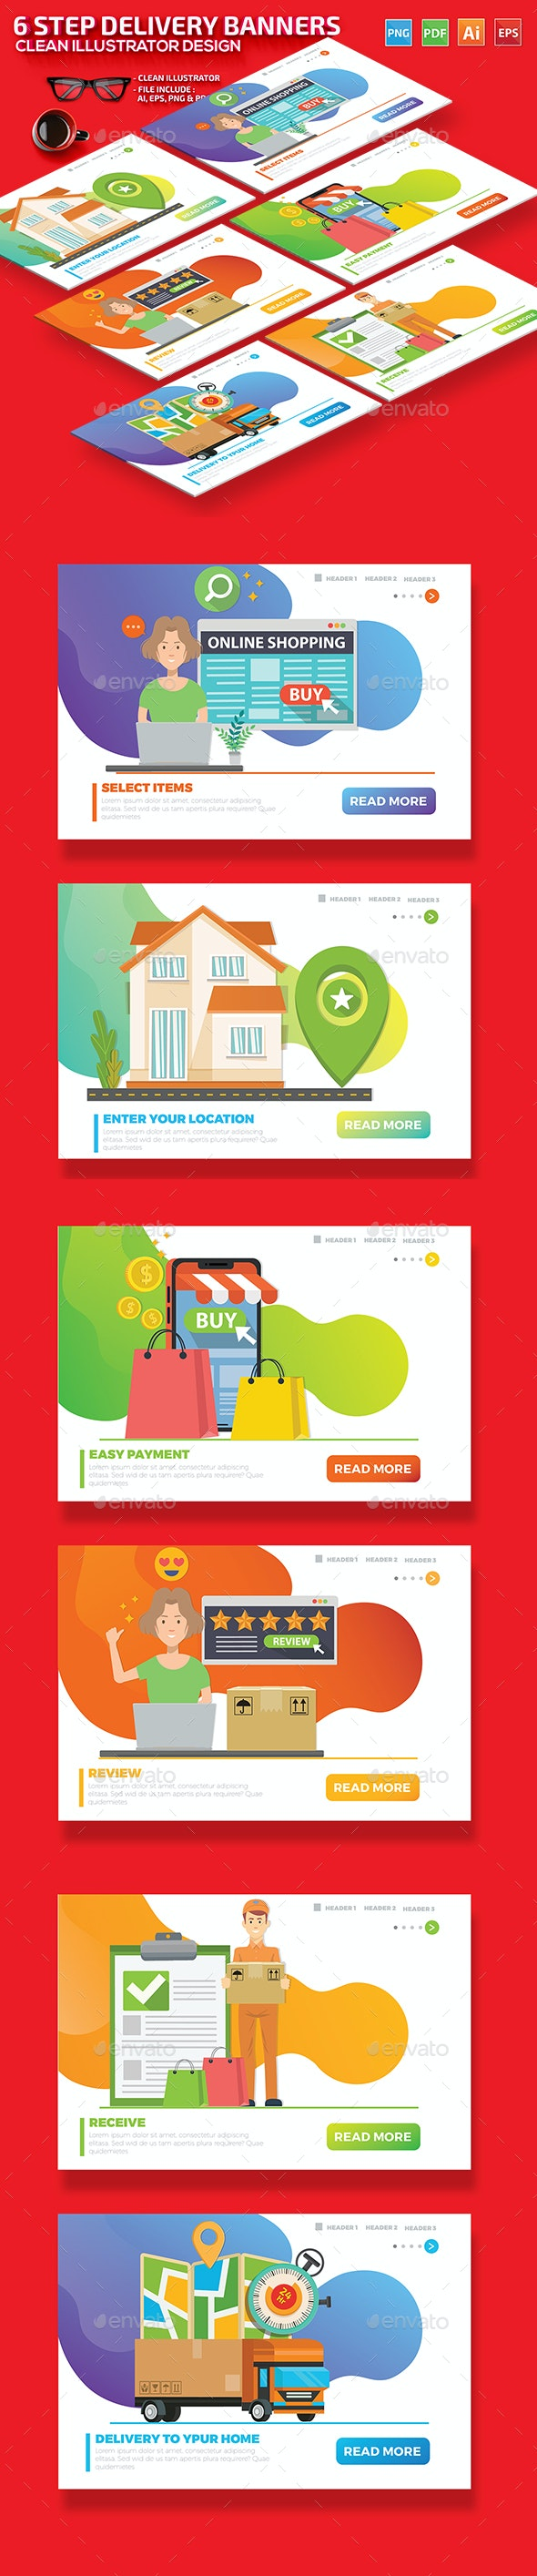 6 Step Delivery Banners design - Graphics